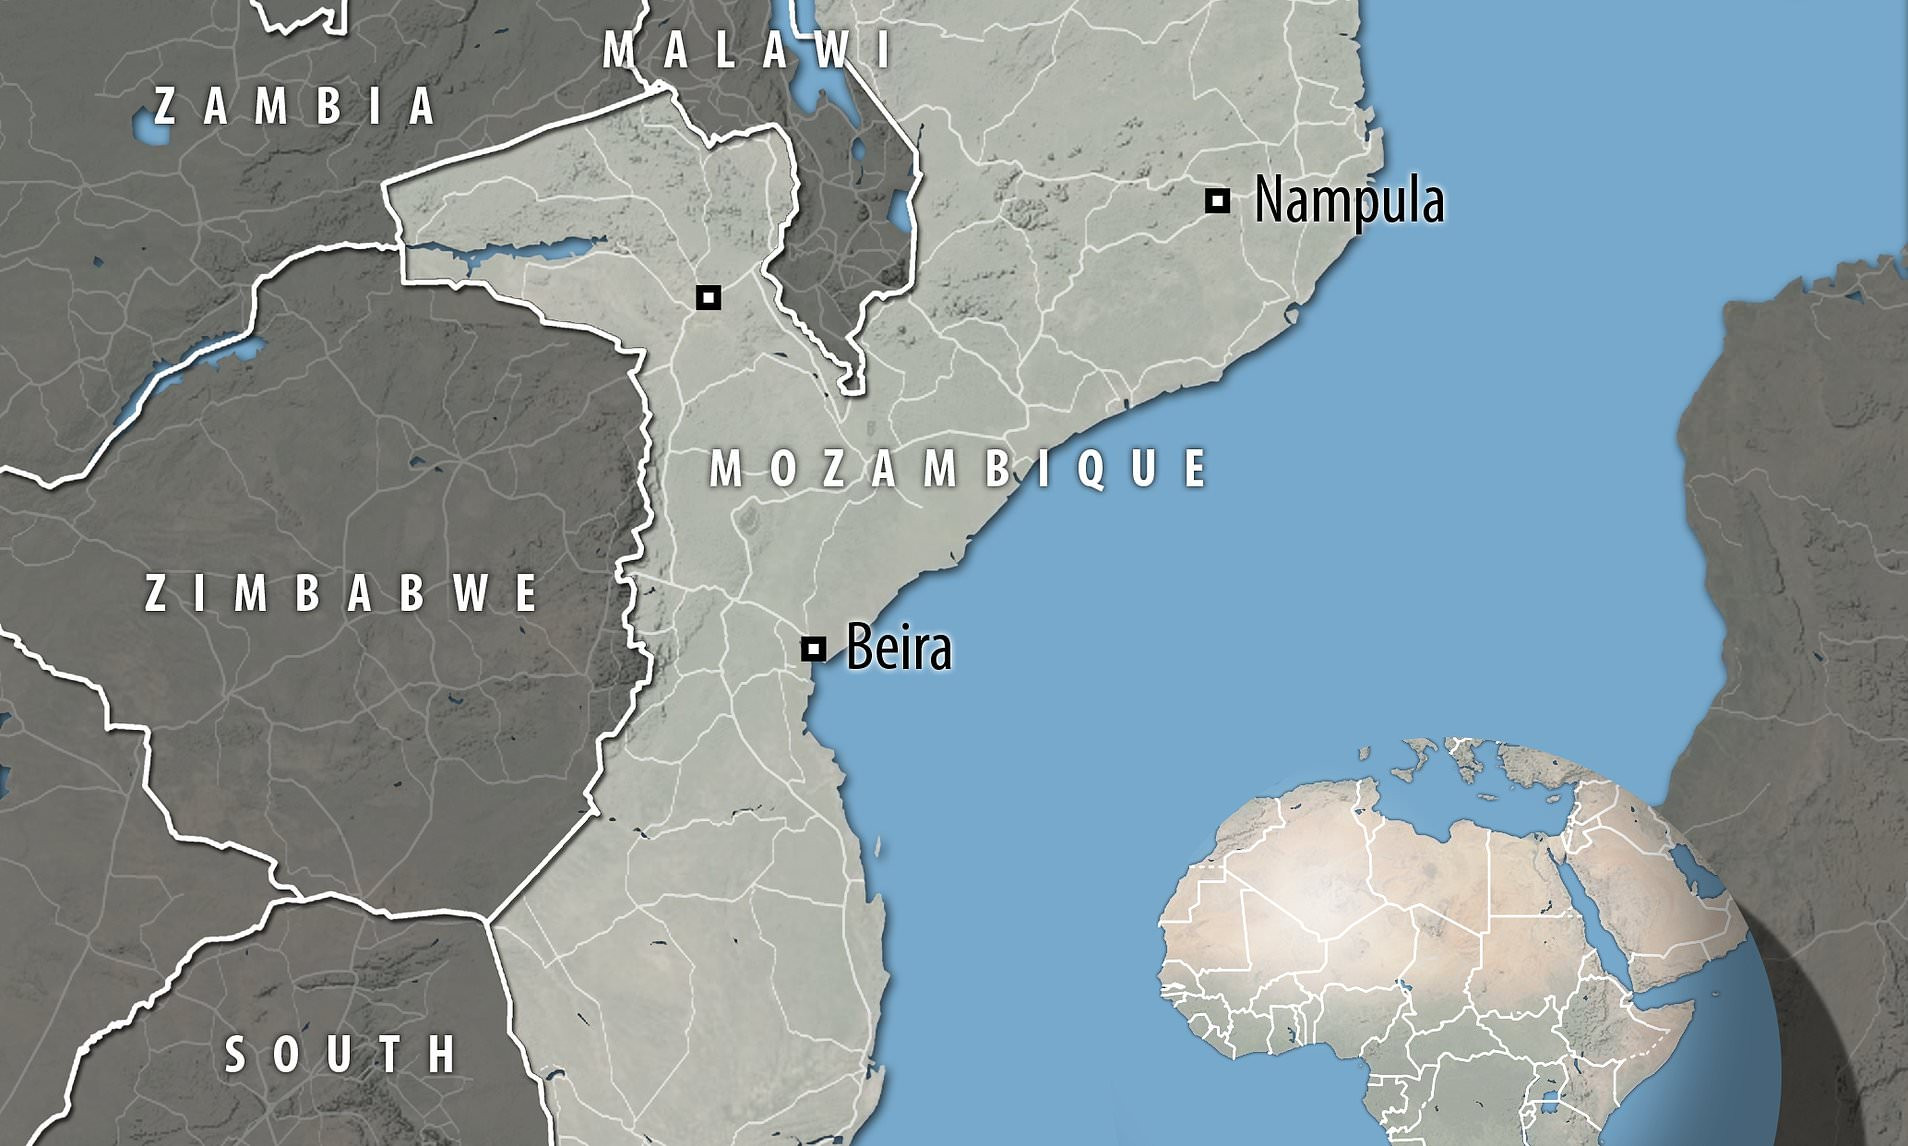 About 60 foreign citizens go missing after Islamist militants attack in Mozambique